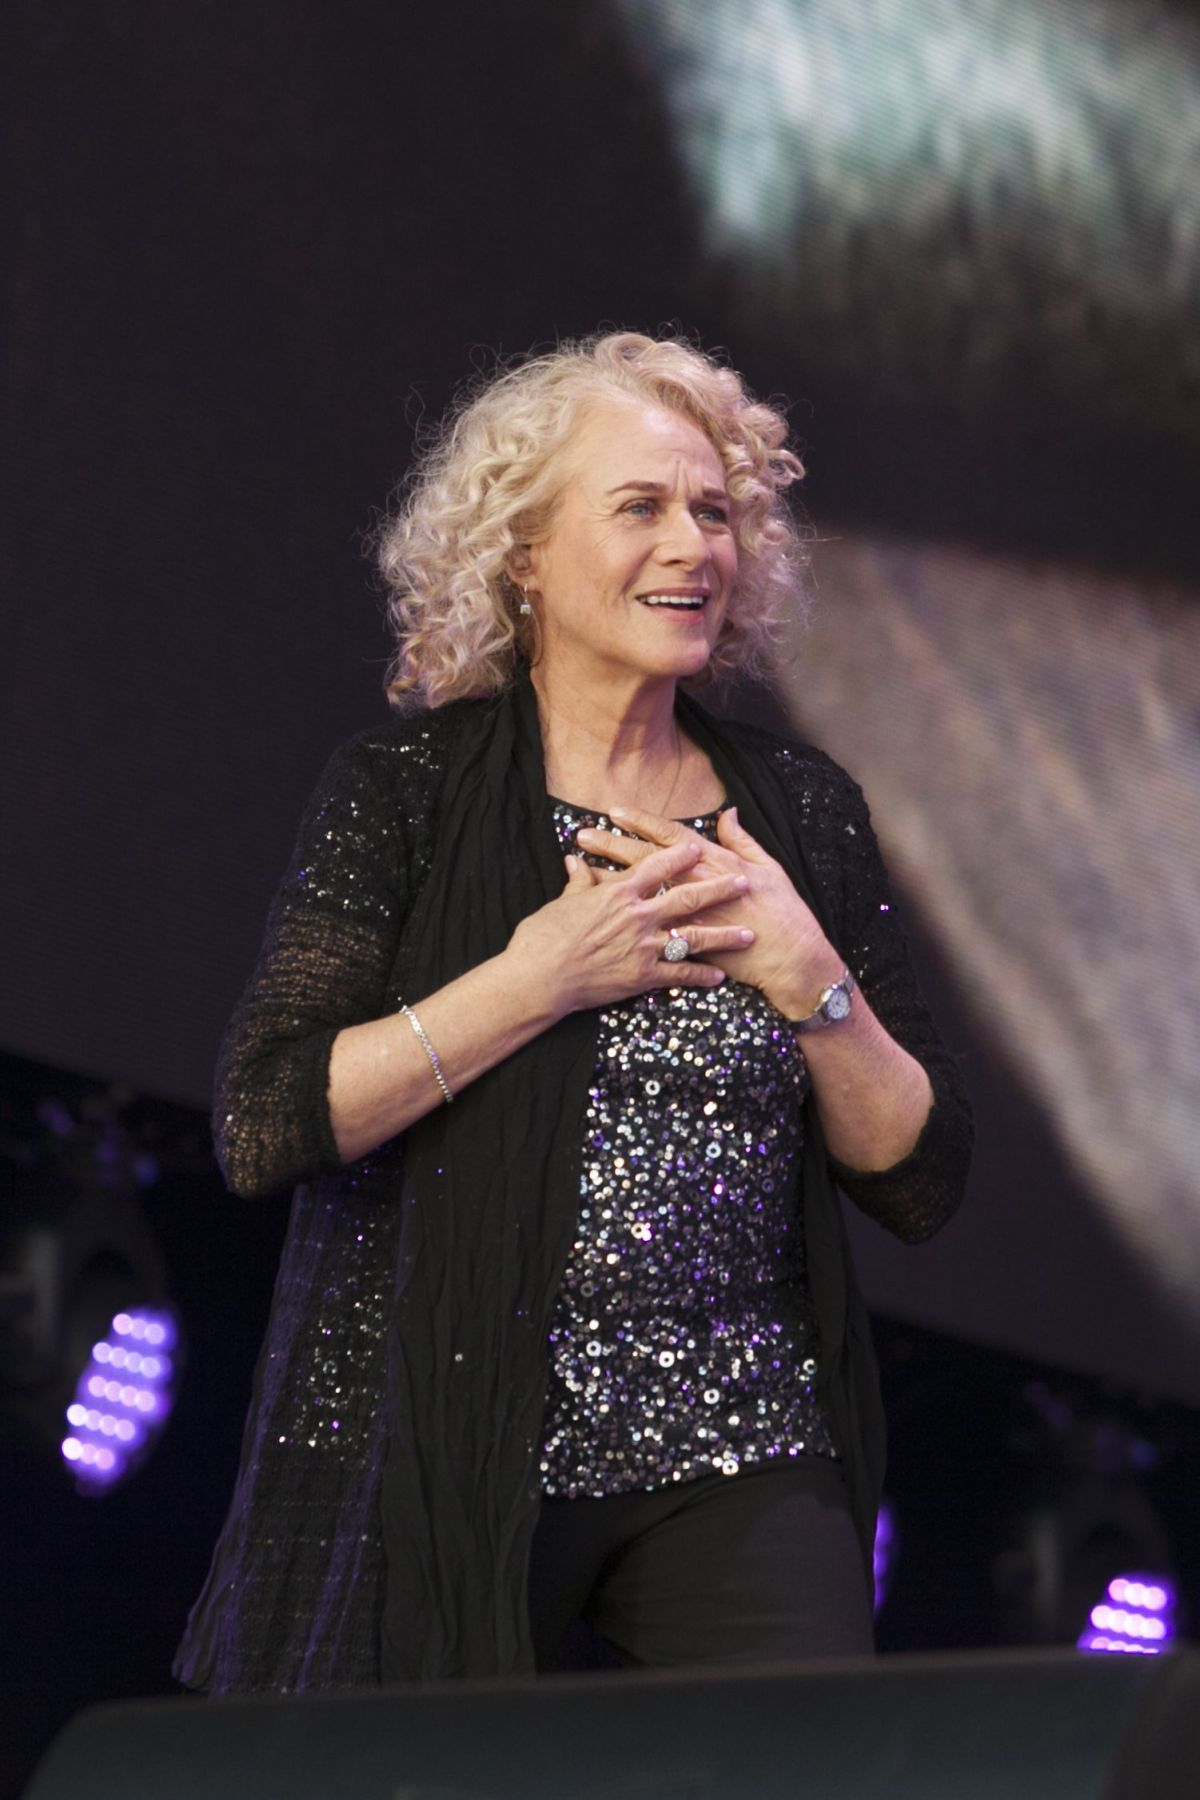 CAROLE KING Performs at British Summertime Festival at Hyde Park in London 07/02/2016